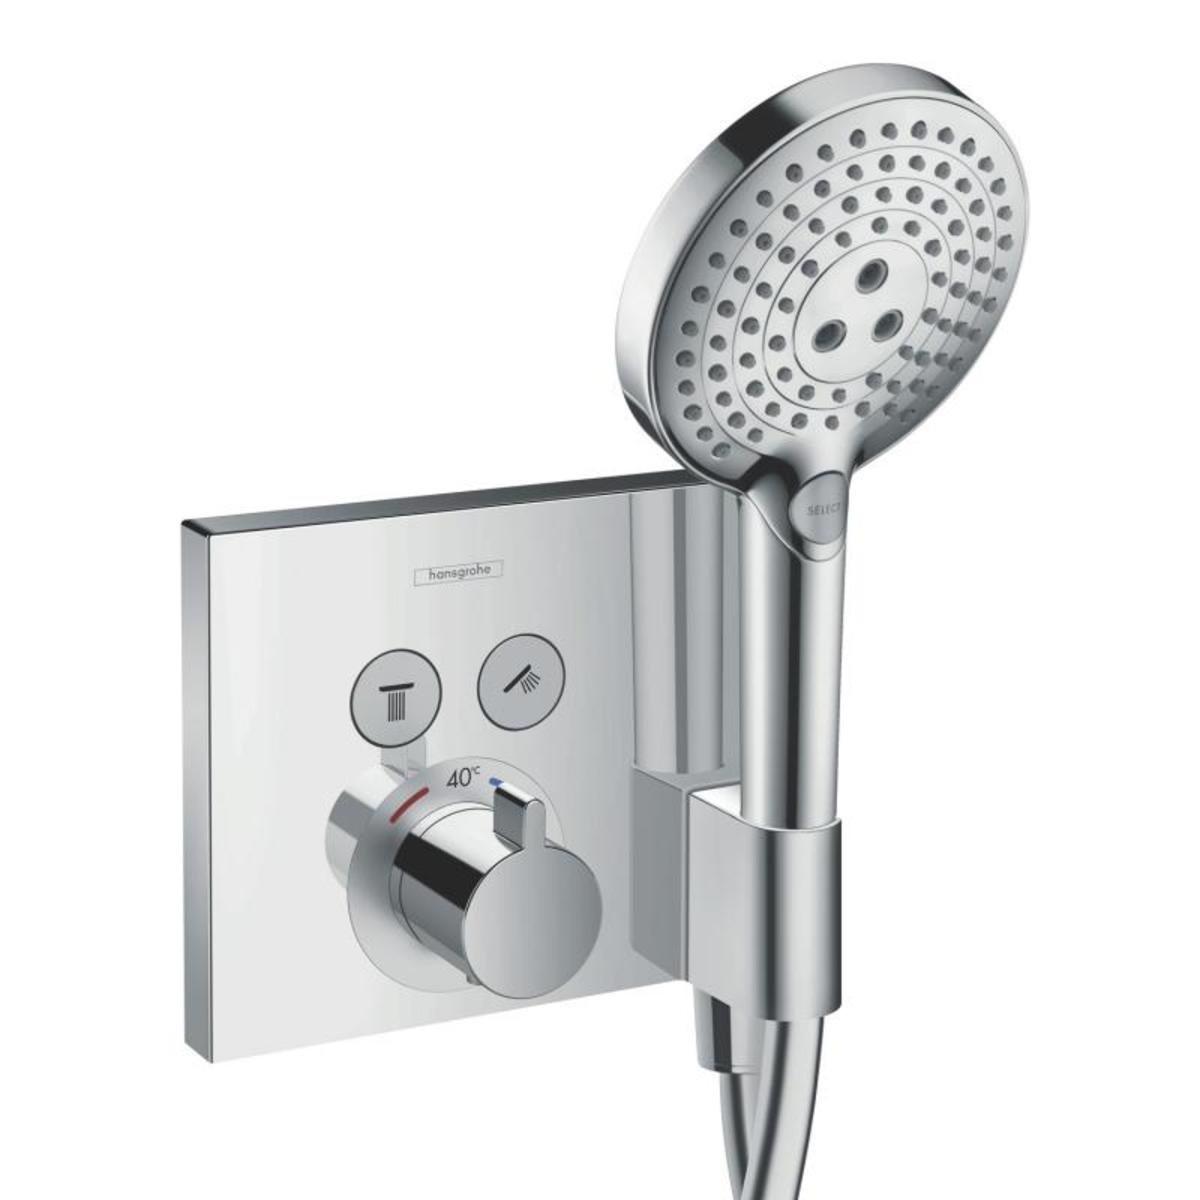 Hansgrohe showerselect set de finition pour robinet de douche thermostatique encastrable 2 voies - Installation douche encastrable ...